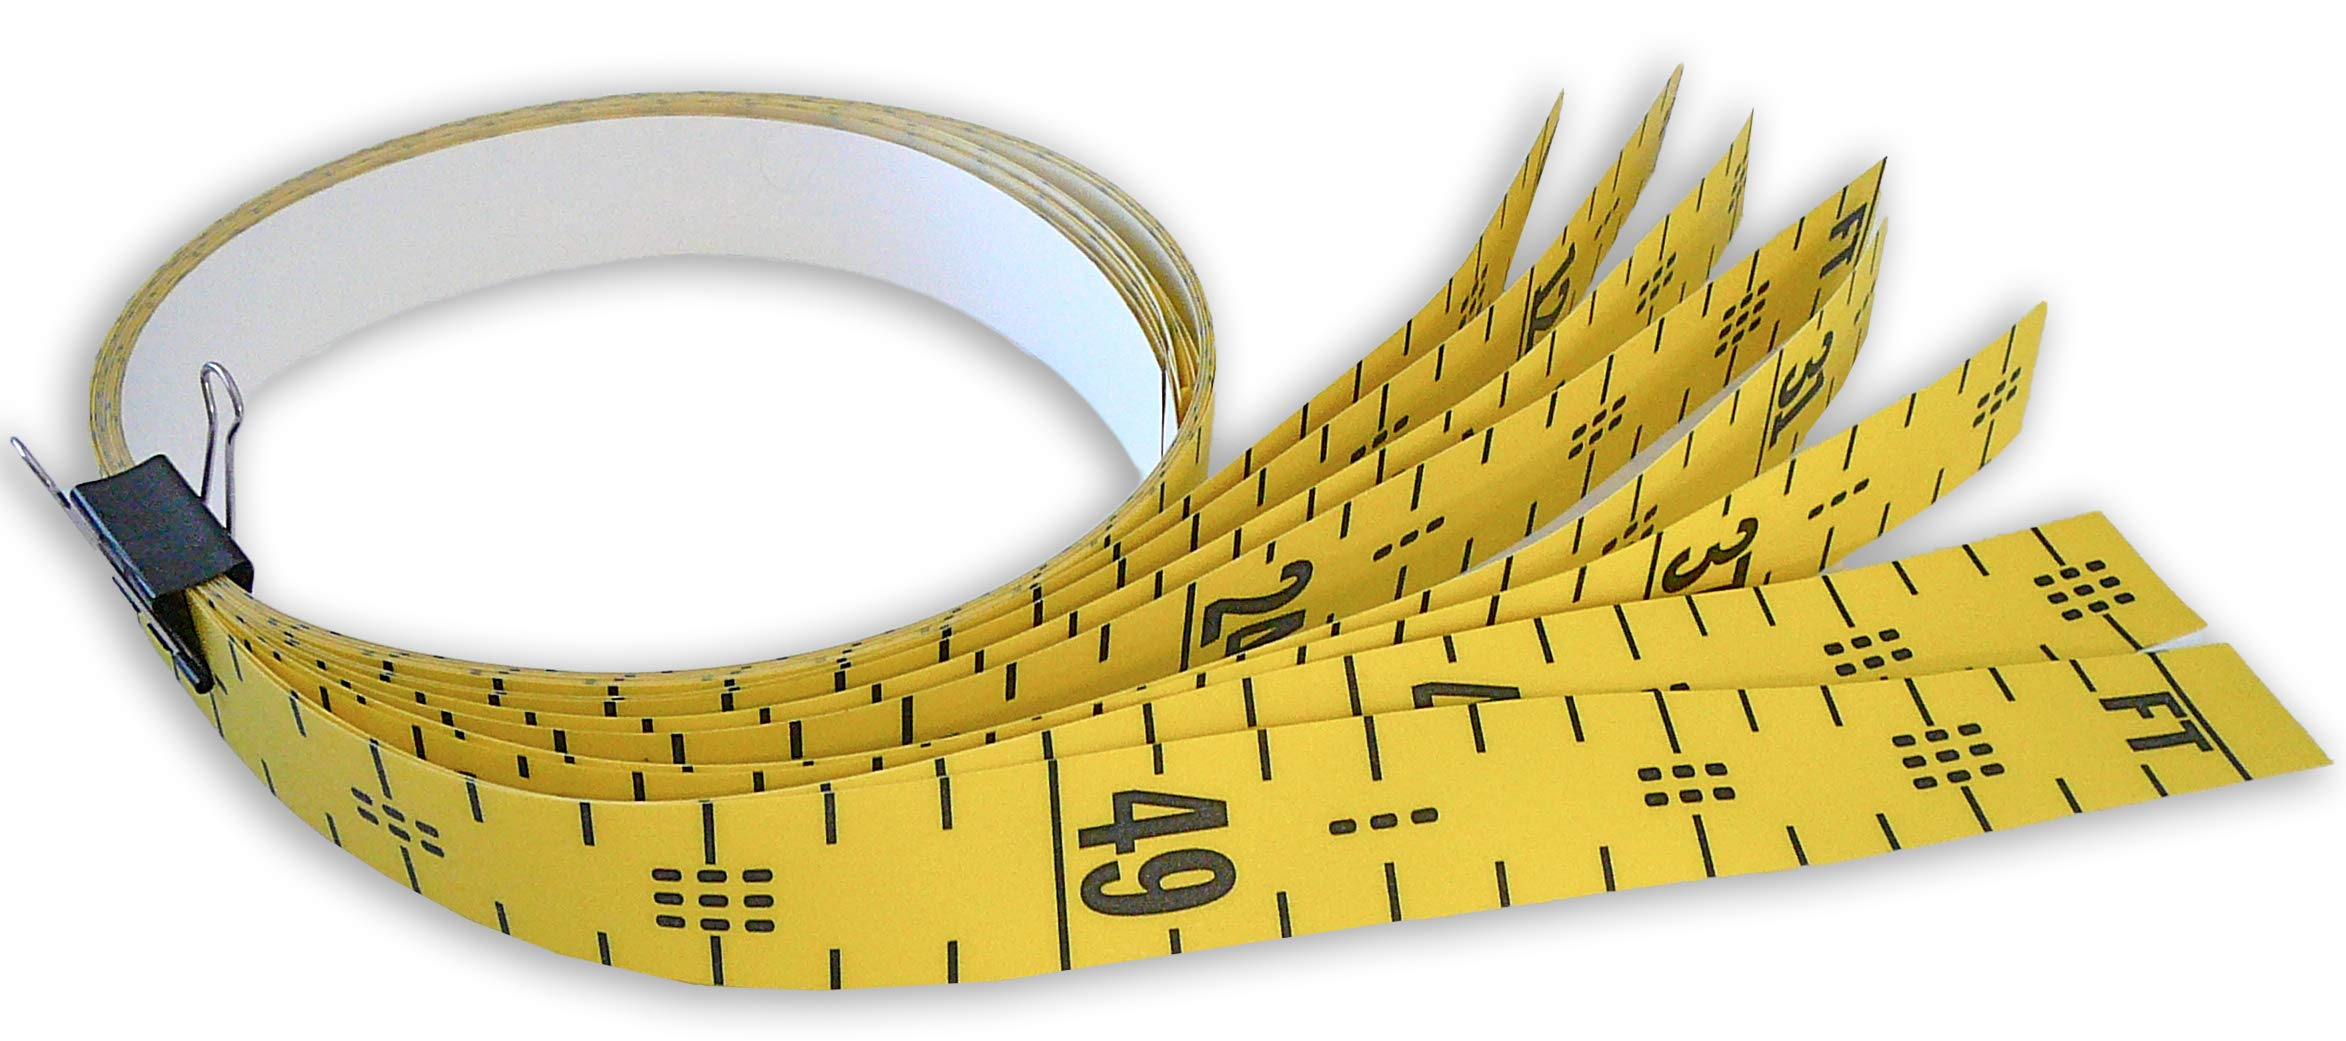 Floor Tape - Adhesive Backed - 2 Inch Wide X 50 Foot Long - Vertical Up - Fractional - 1'' Grads - Yellow - 8 Pieces by Oregon Rule Co.